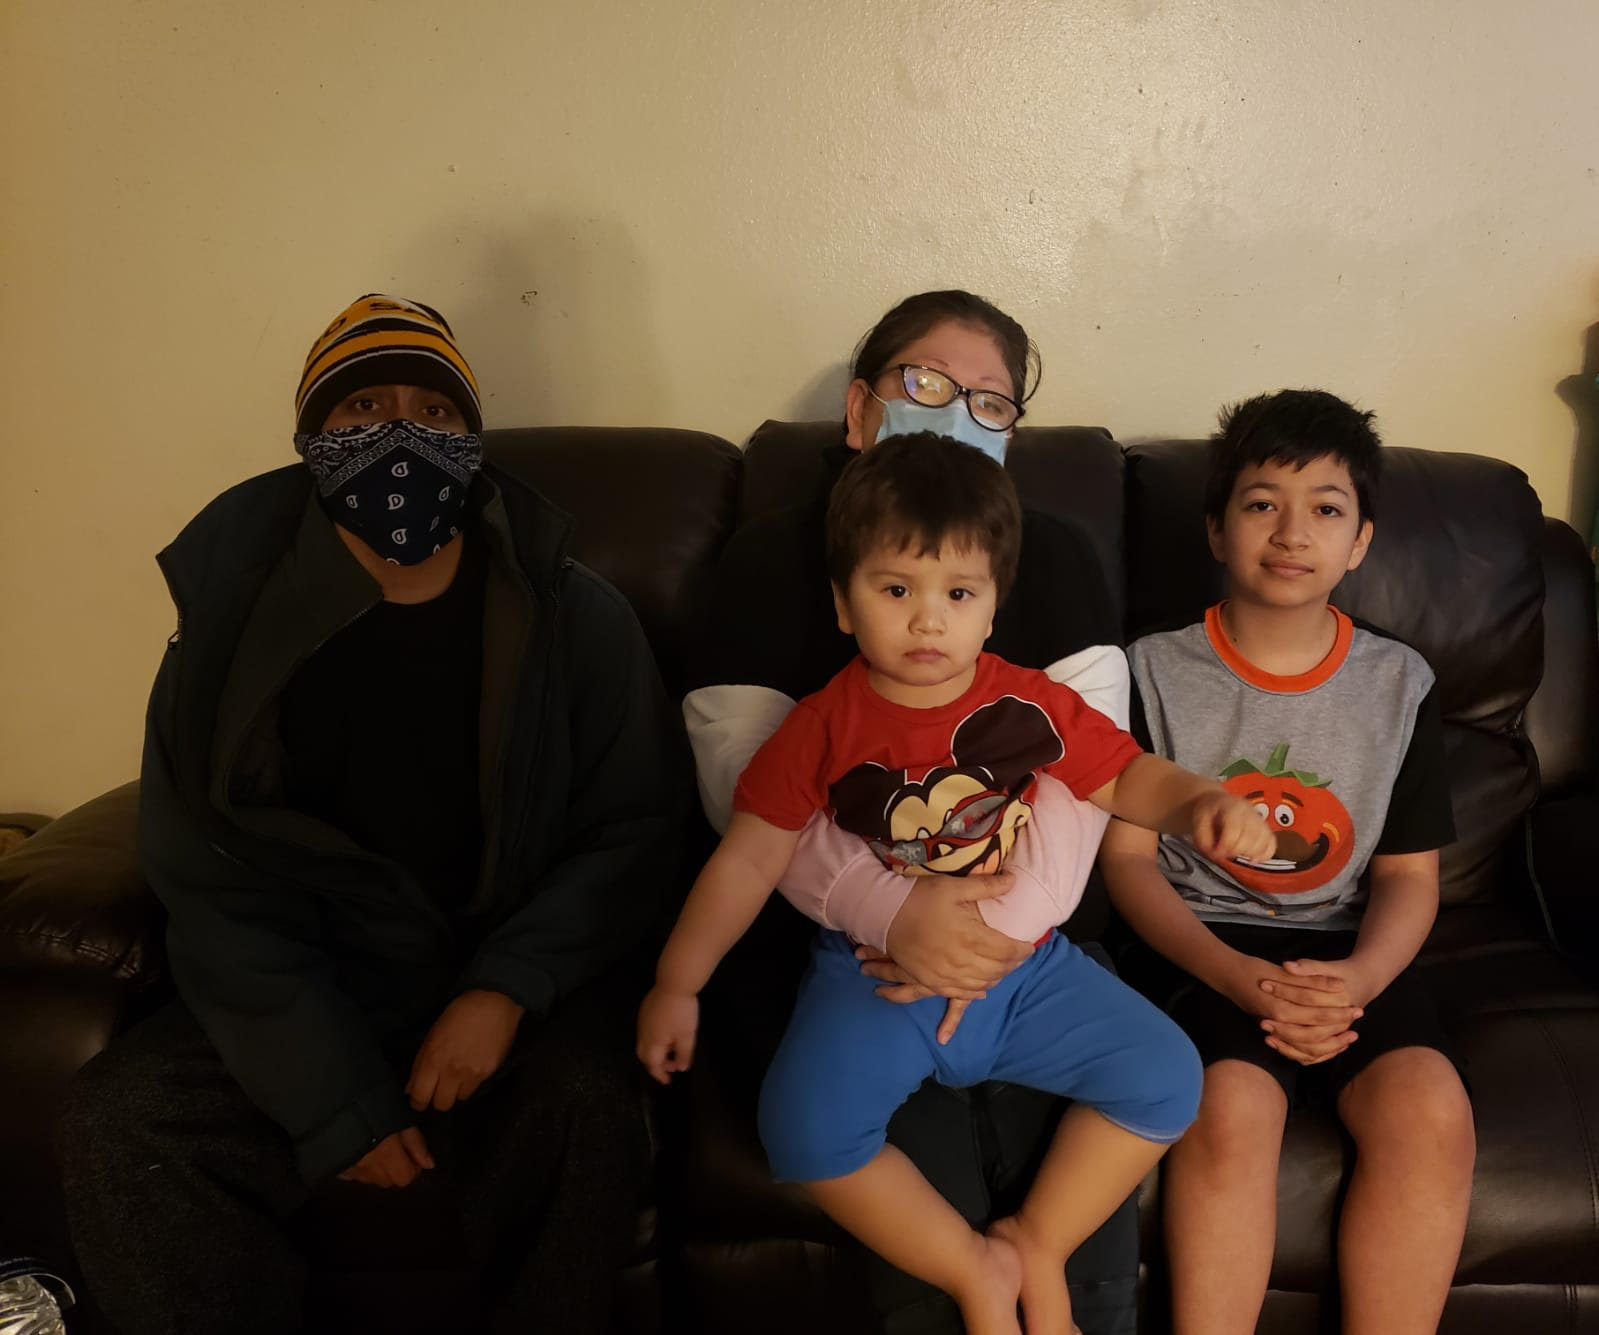 Immigrant Family Contracts COVID-19,  Afraid to Ask For Help